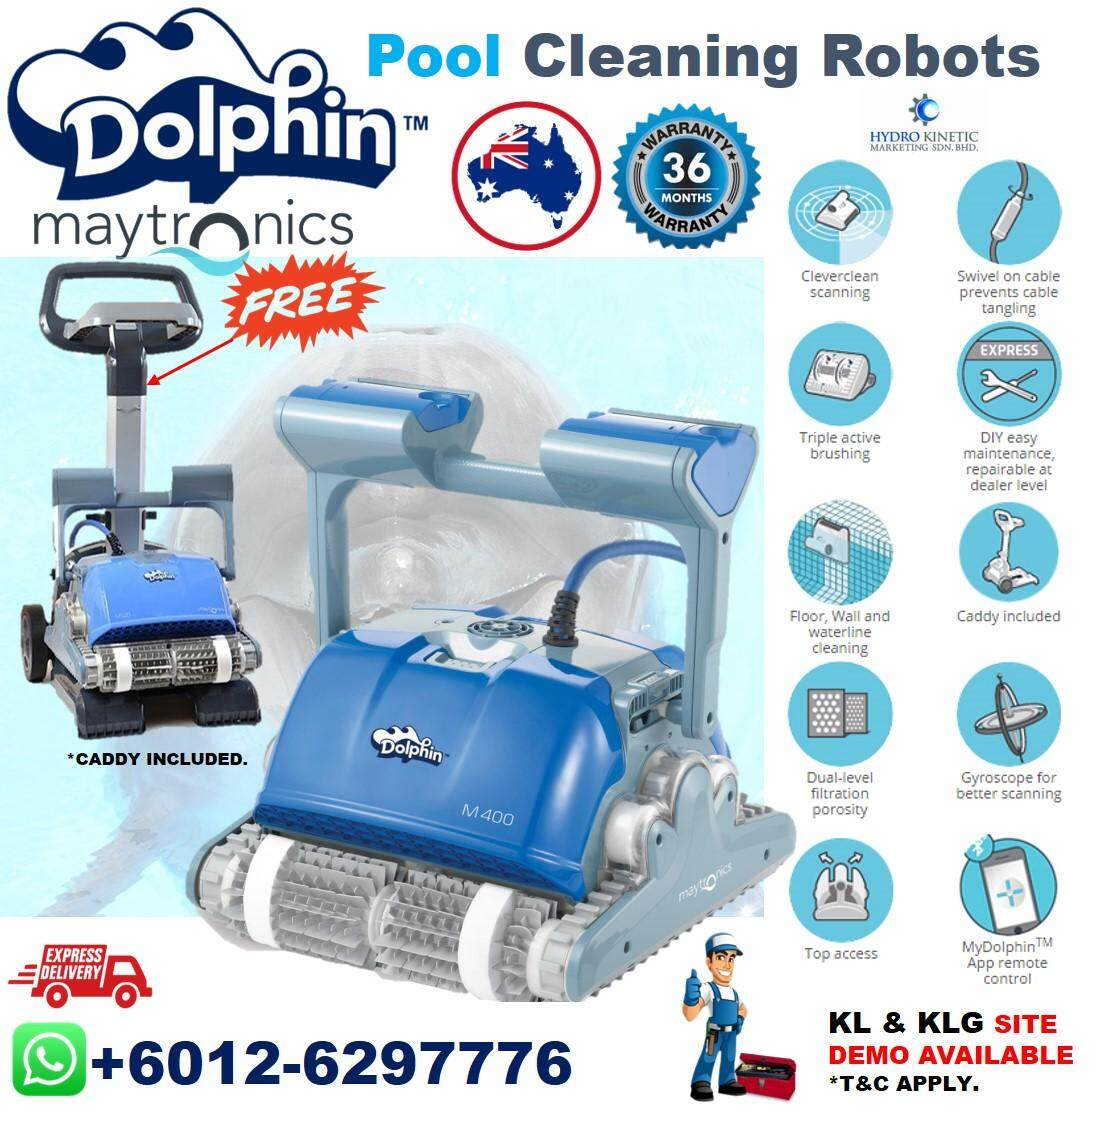 Dolphin Supreme M400 PRO Swimming Pool Cleaner Robot,recommended for pools of 12m - 15m (40 - 49 ft) in length**Demo Available In Klang Valley with T&C Apply.